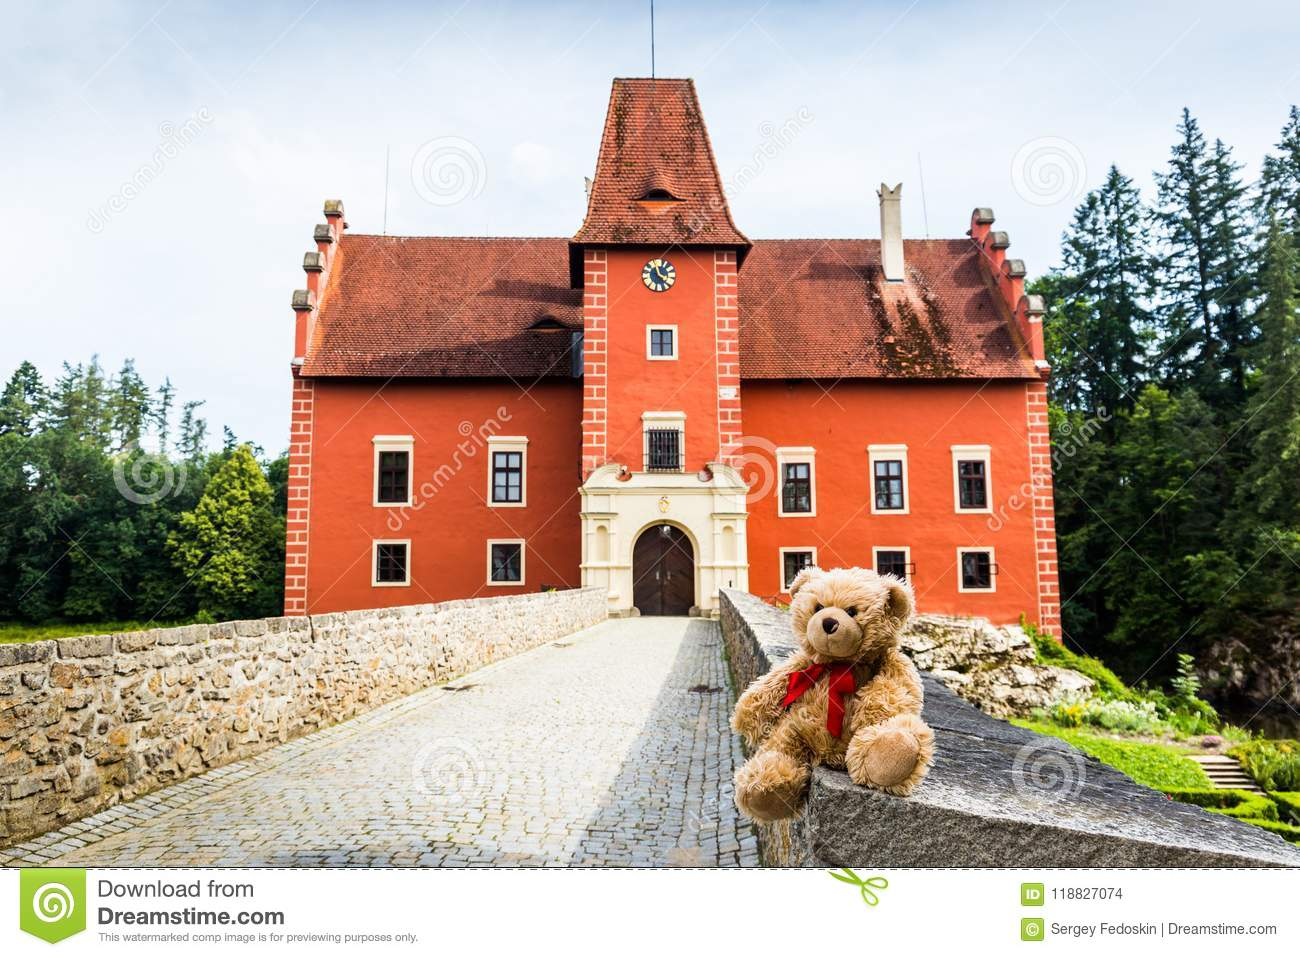 Teddy bear Dranik near Cervena Lhota castle.